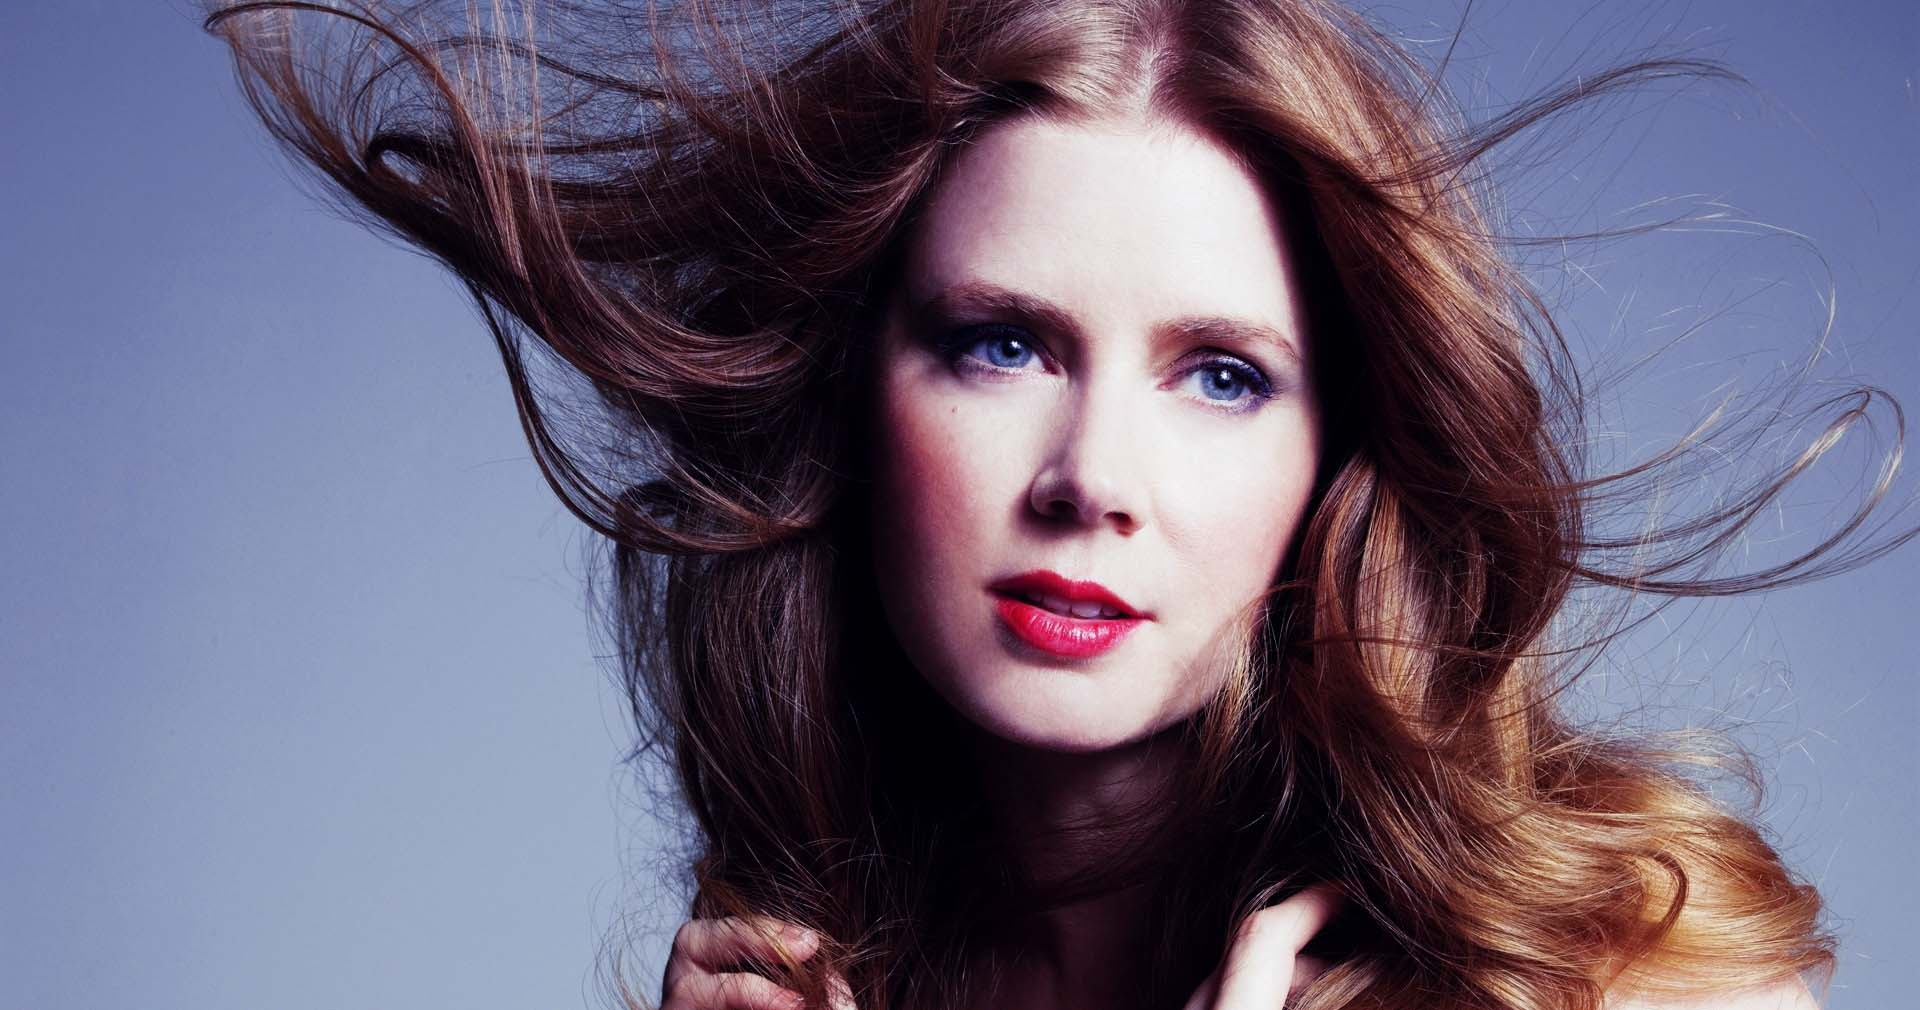 download amy adams beautiful hair style look pose still free background hd computer images